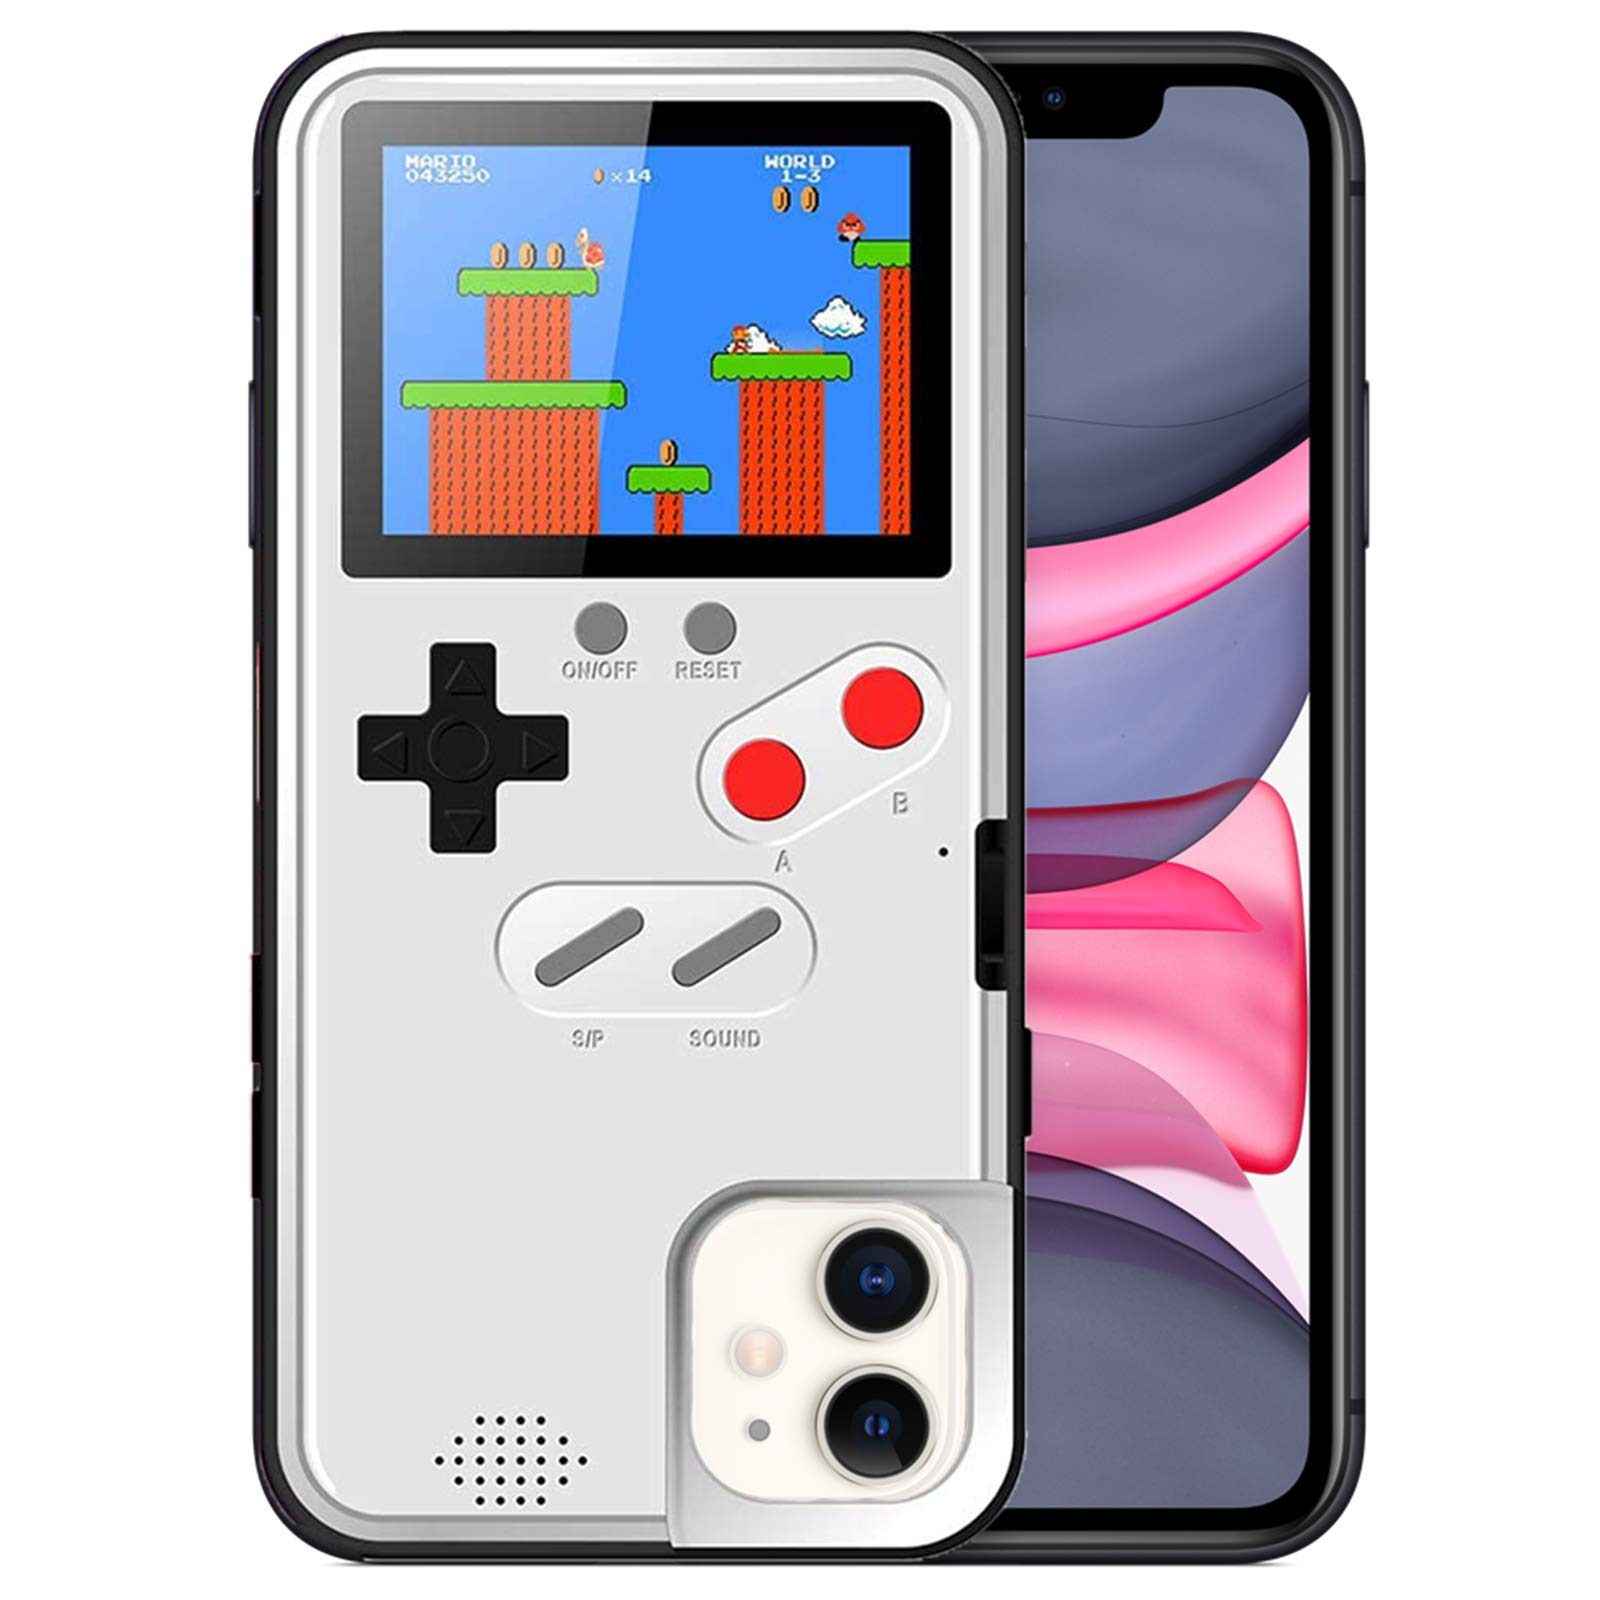 Gameboy Case for iPhone 12/12 Pro, Retro Protective Cover Self-Powered Case with 36 Small Game, Color Display Gameboy Phone Case, Handheld Video Game ...